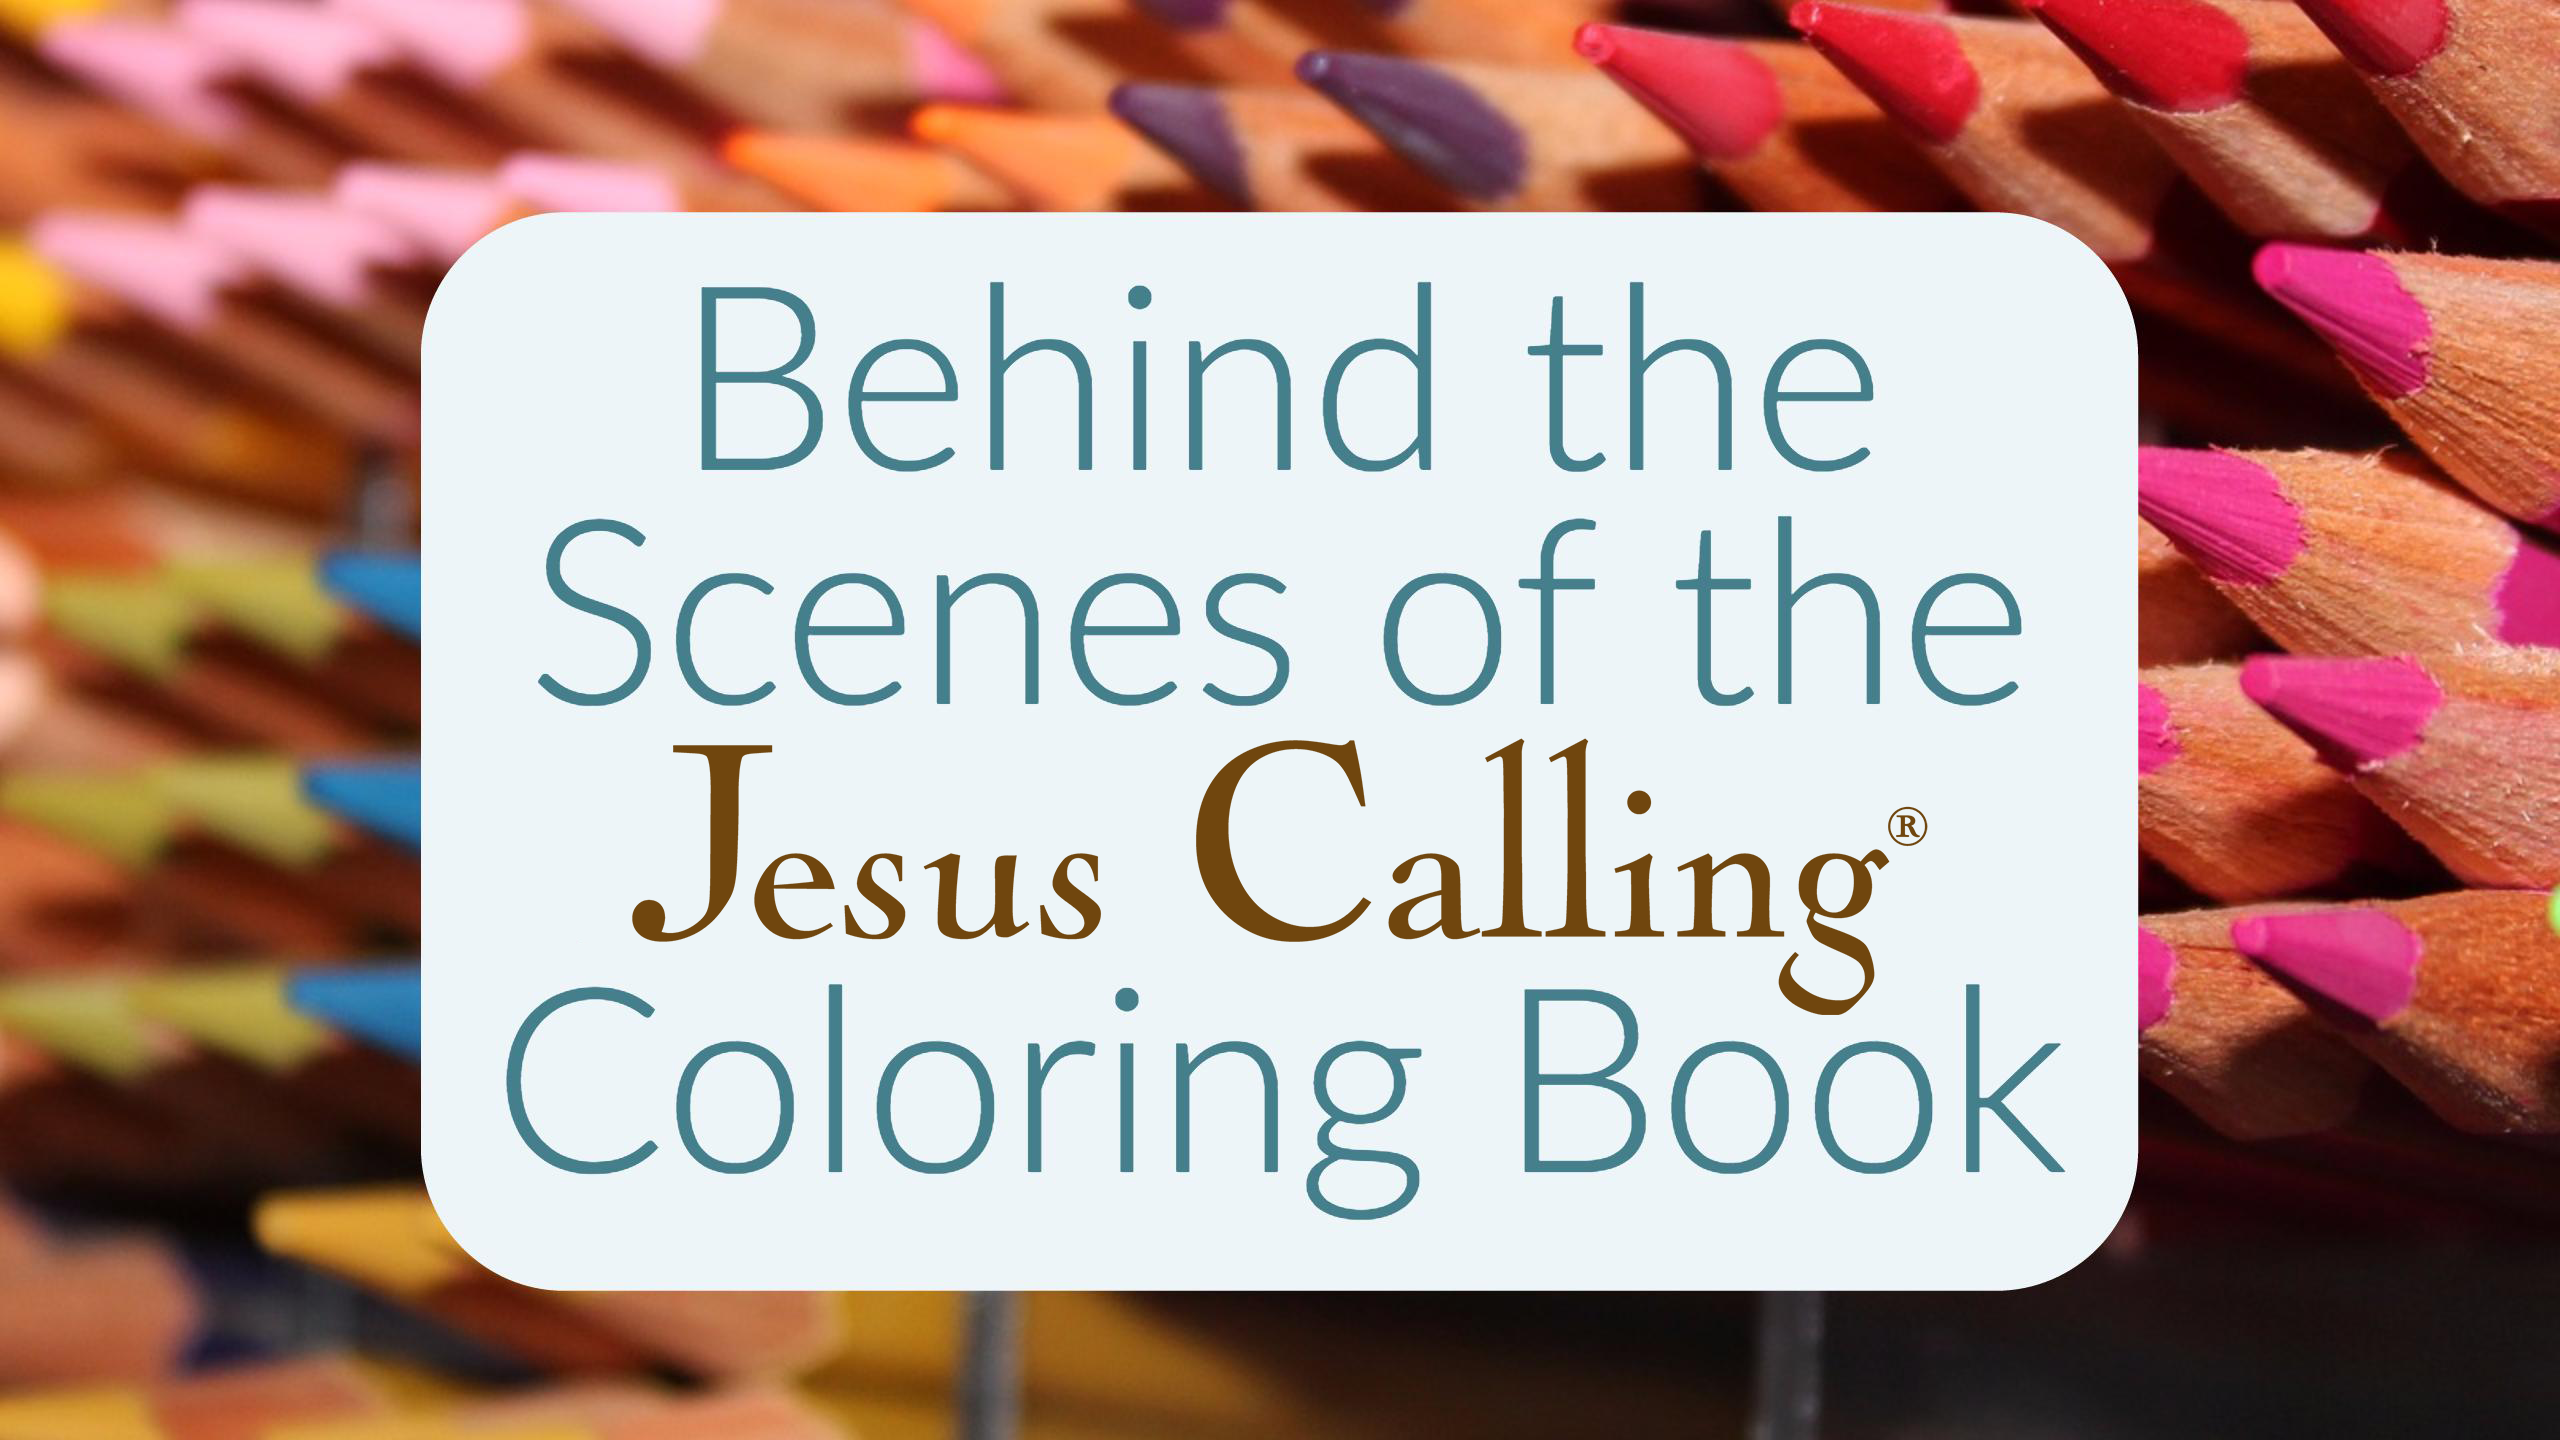 Behind the Scenes of the Jesus Calling Coloring Book.